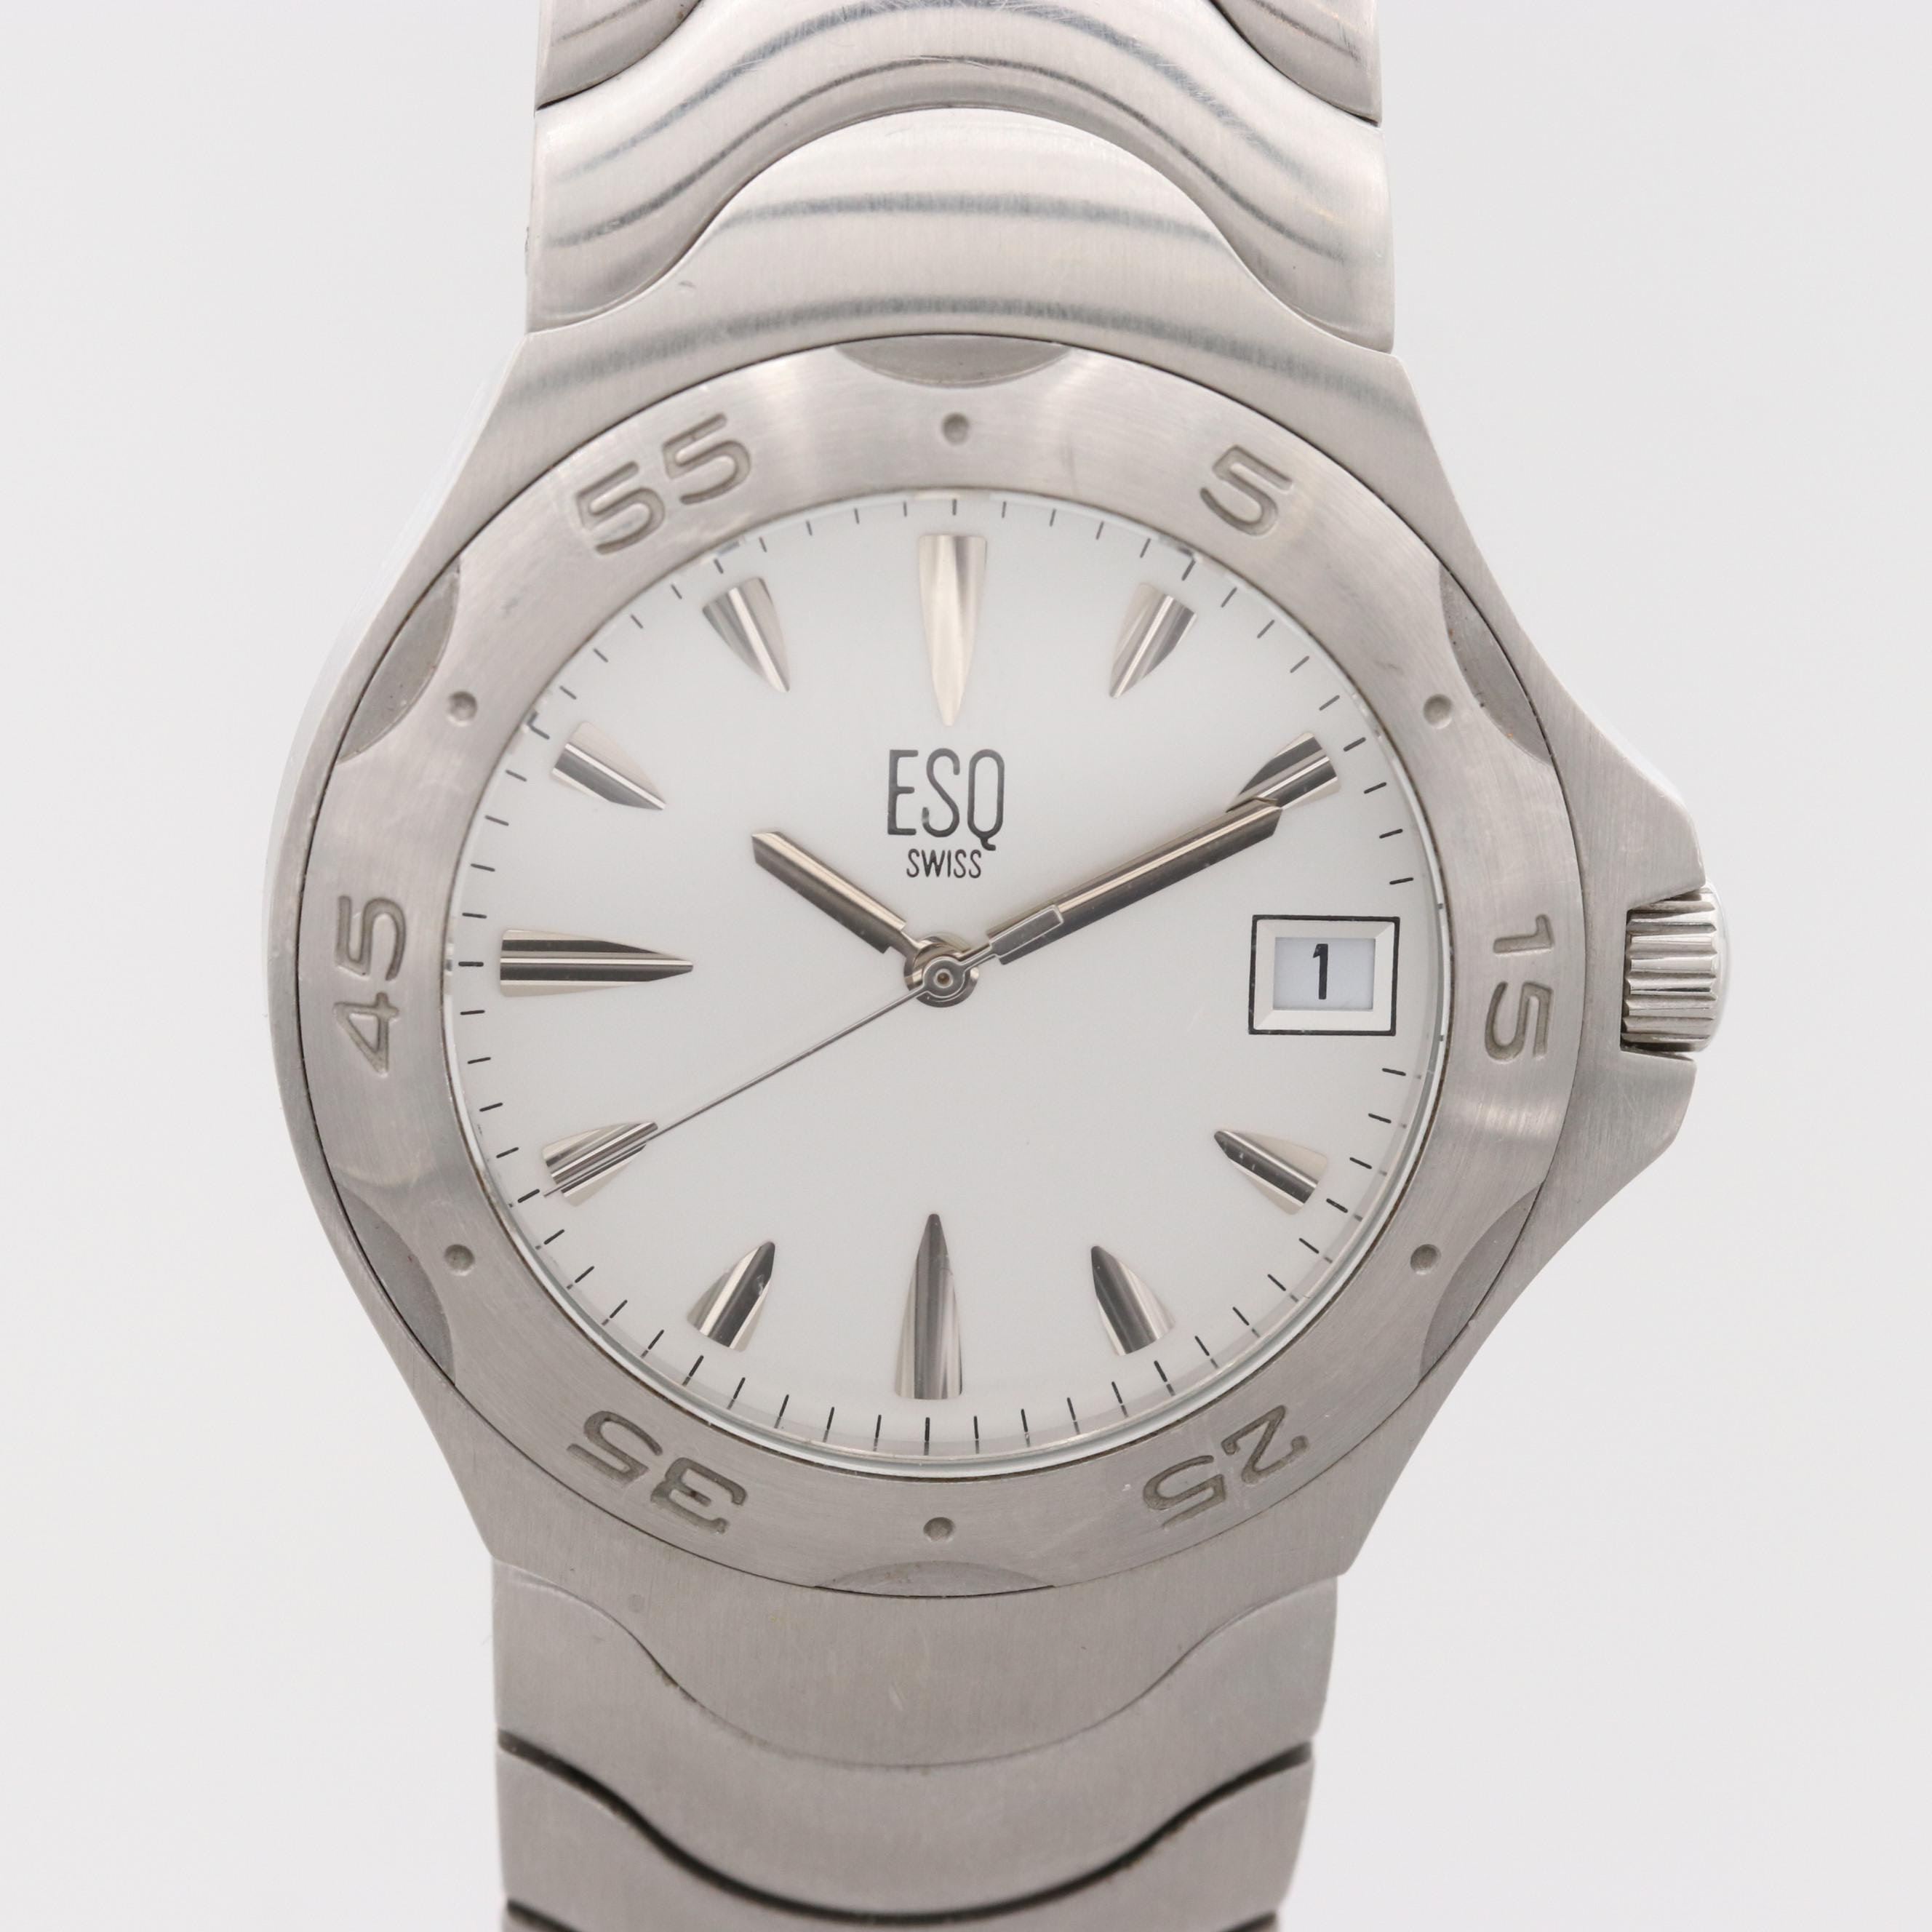 ESQ E5087 Stainless Steel Wristwatch